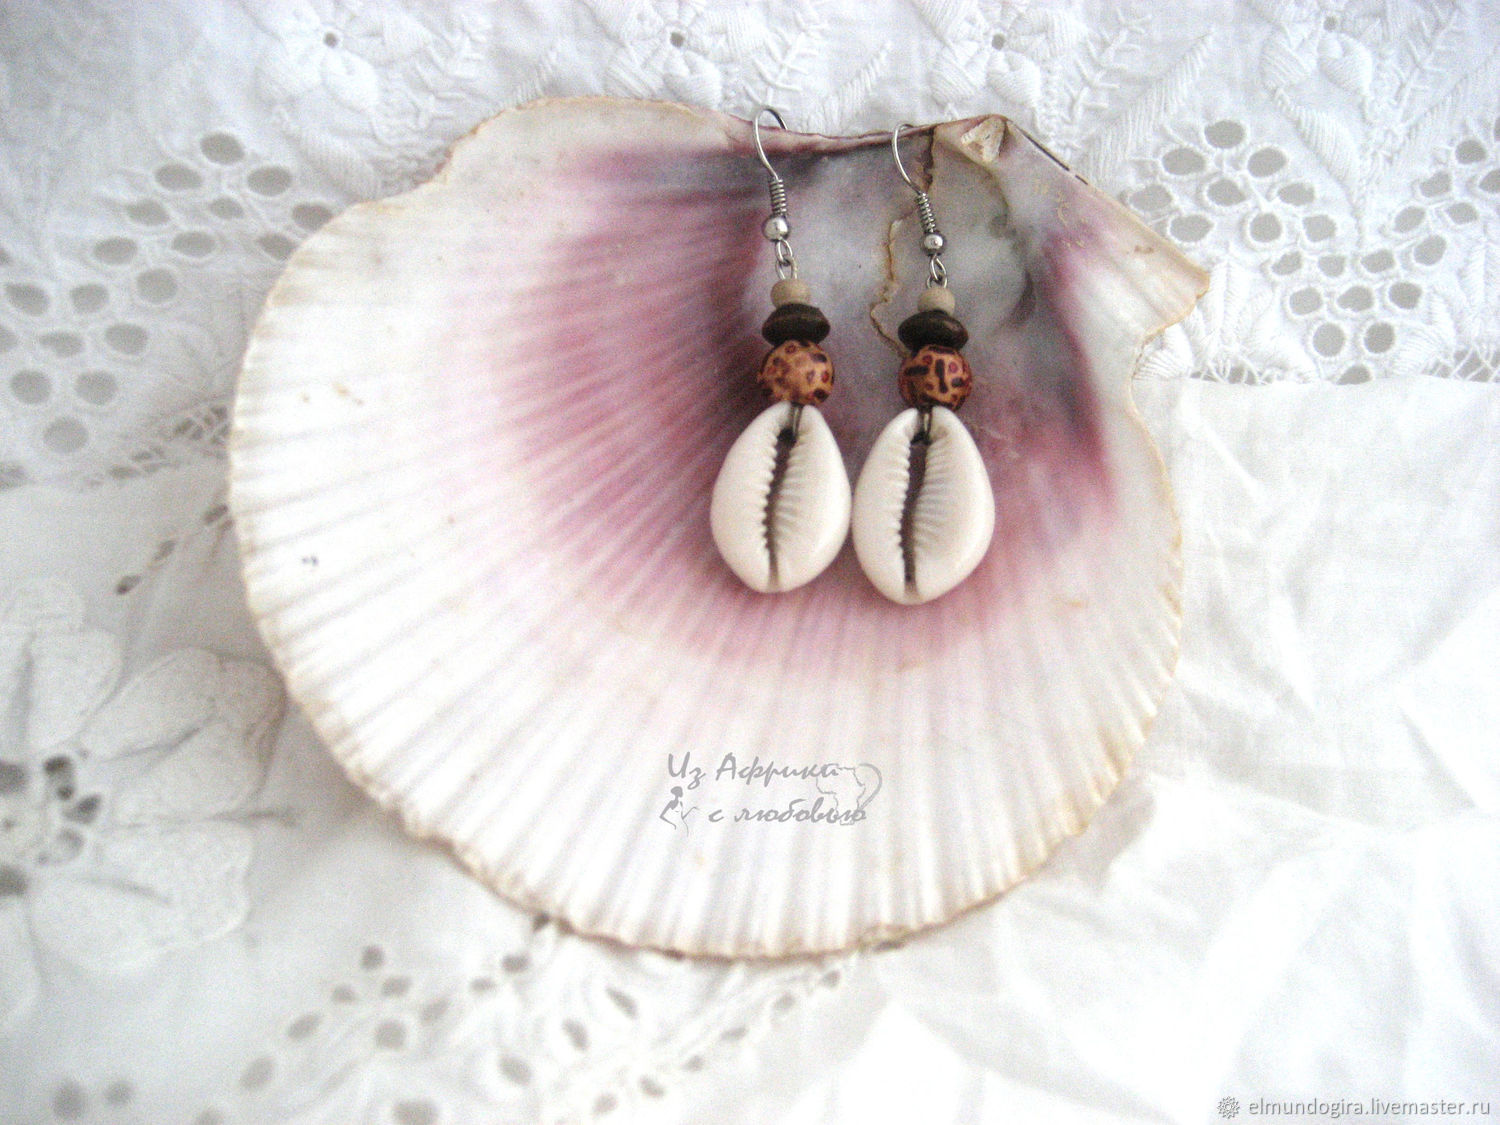 Earrings made of shells cowries 'Leopard in the snow', Earrings, Moscow,  Фото №1